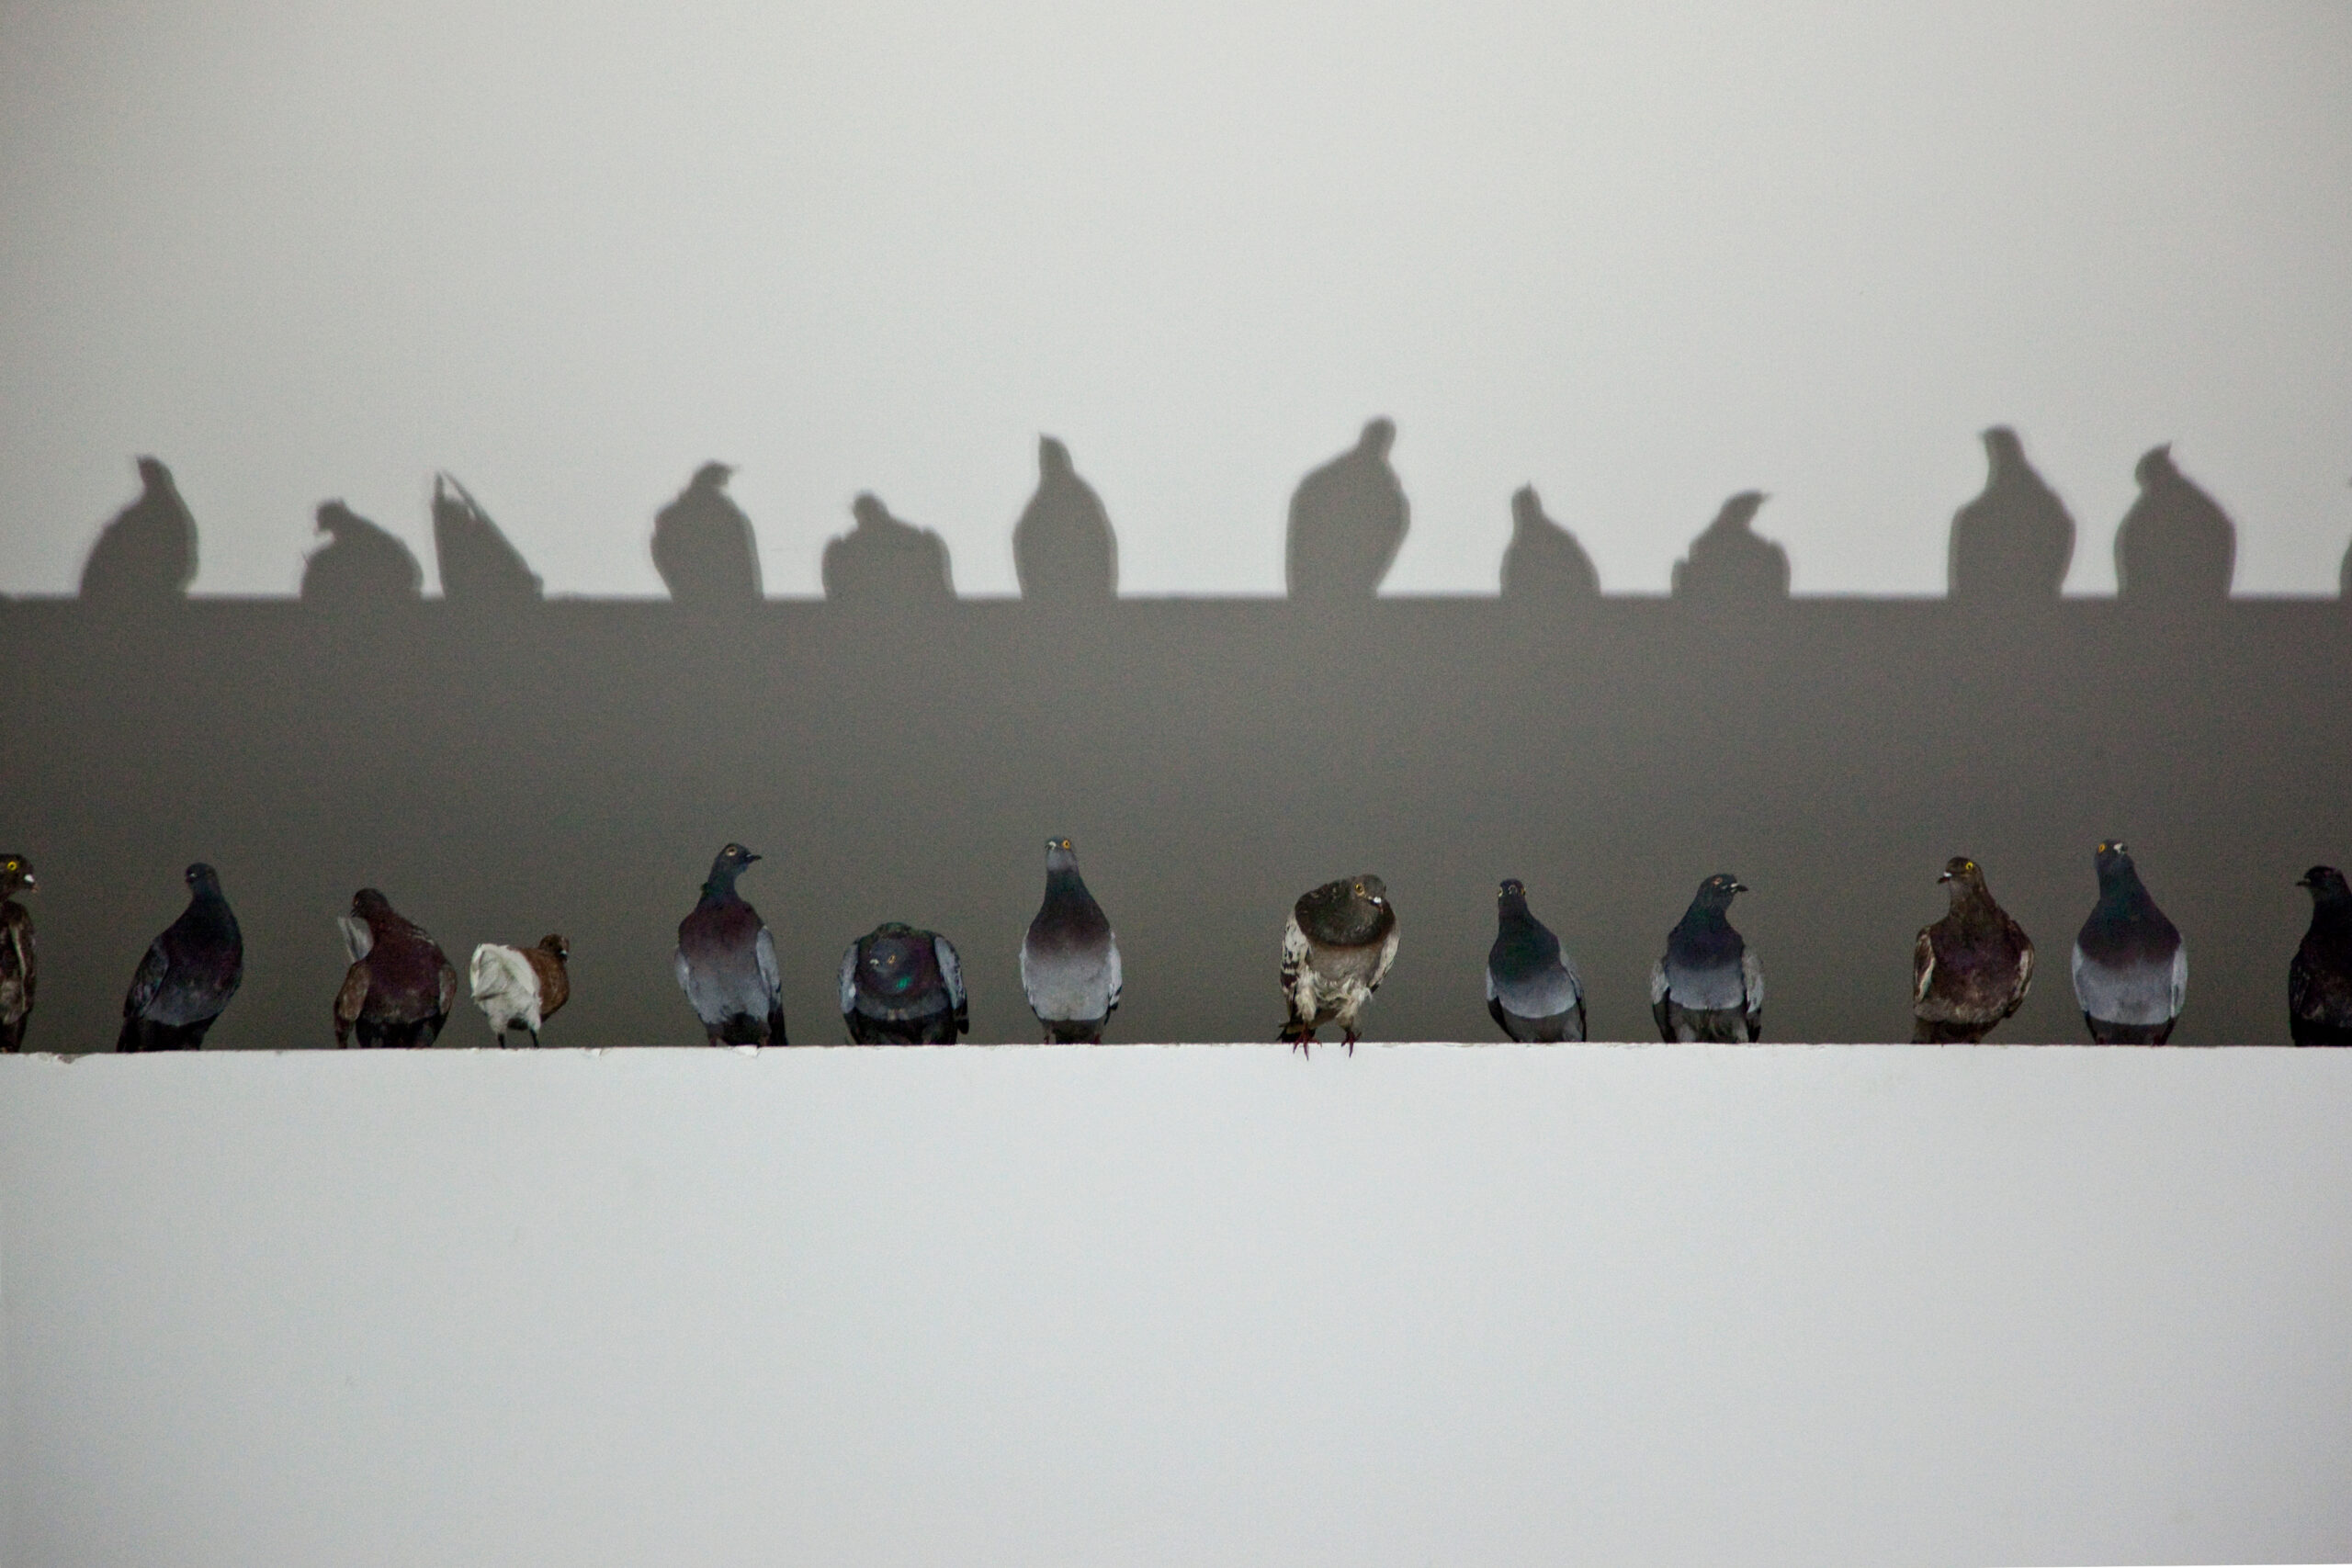 Maurizio Cattelan, Others, 2011, Taxidermied pigeons, Environmental dimensions  Installation view, 54th Venice Biennale, 2011  Courtesy Maurizio Cattelan's Archive  Photo Zeno Zotti